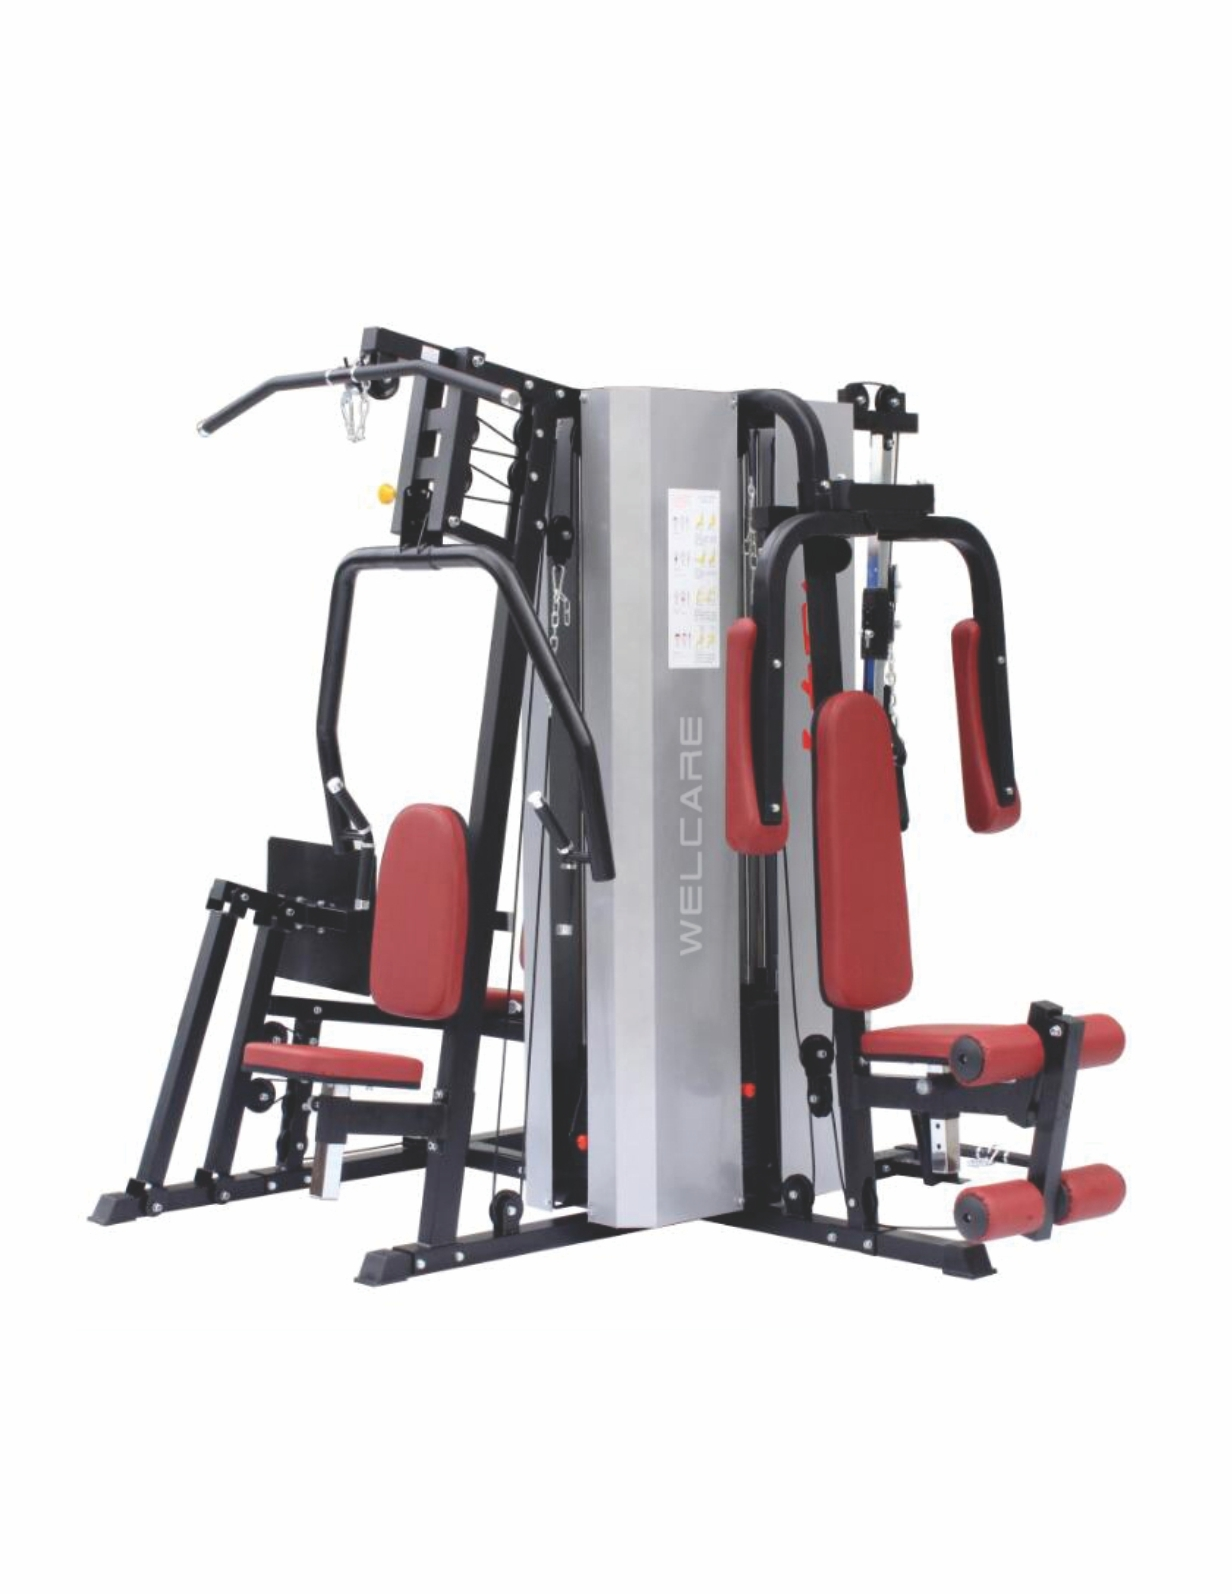 WC4533 4 STACK MULTI GYM